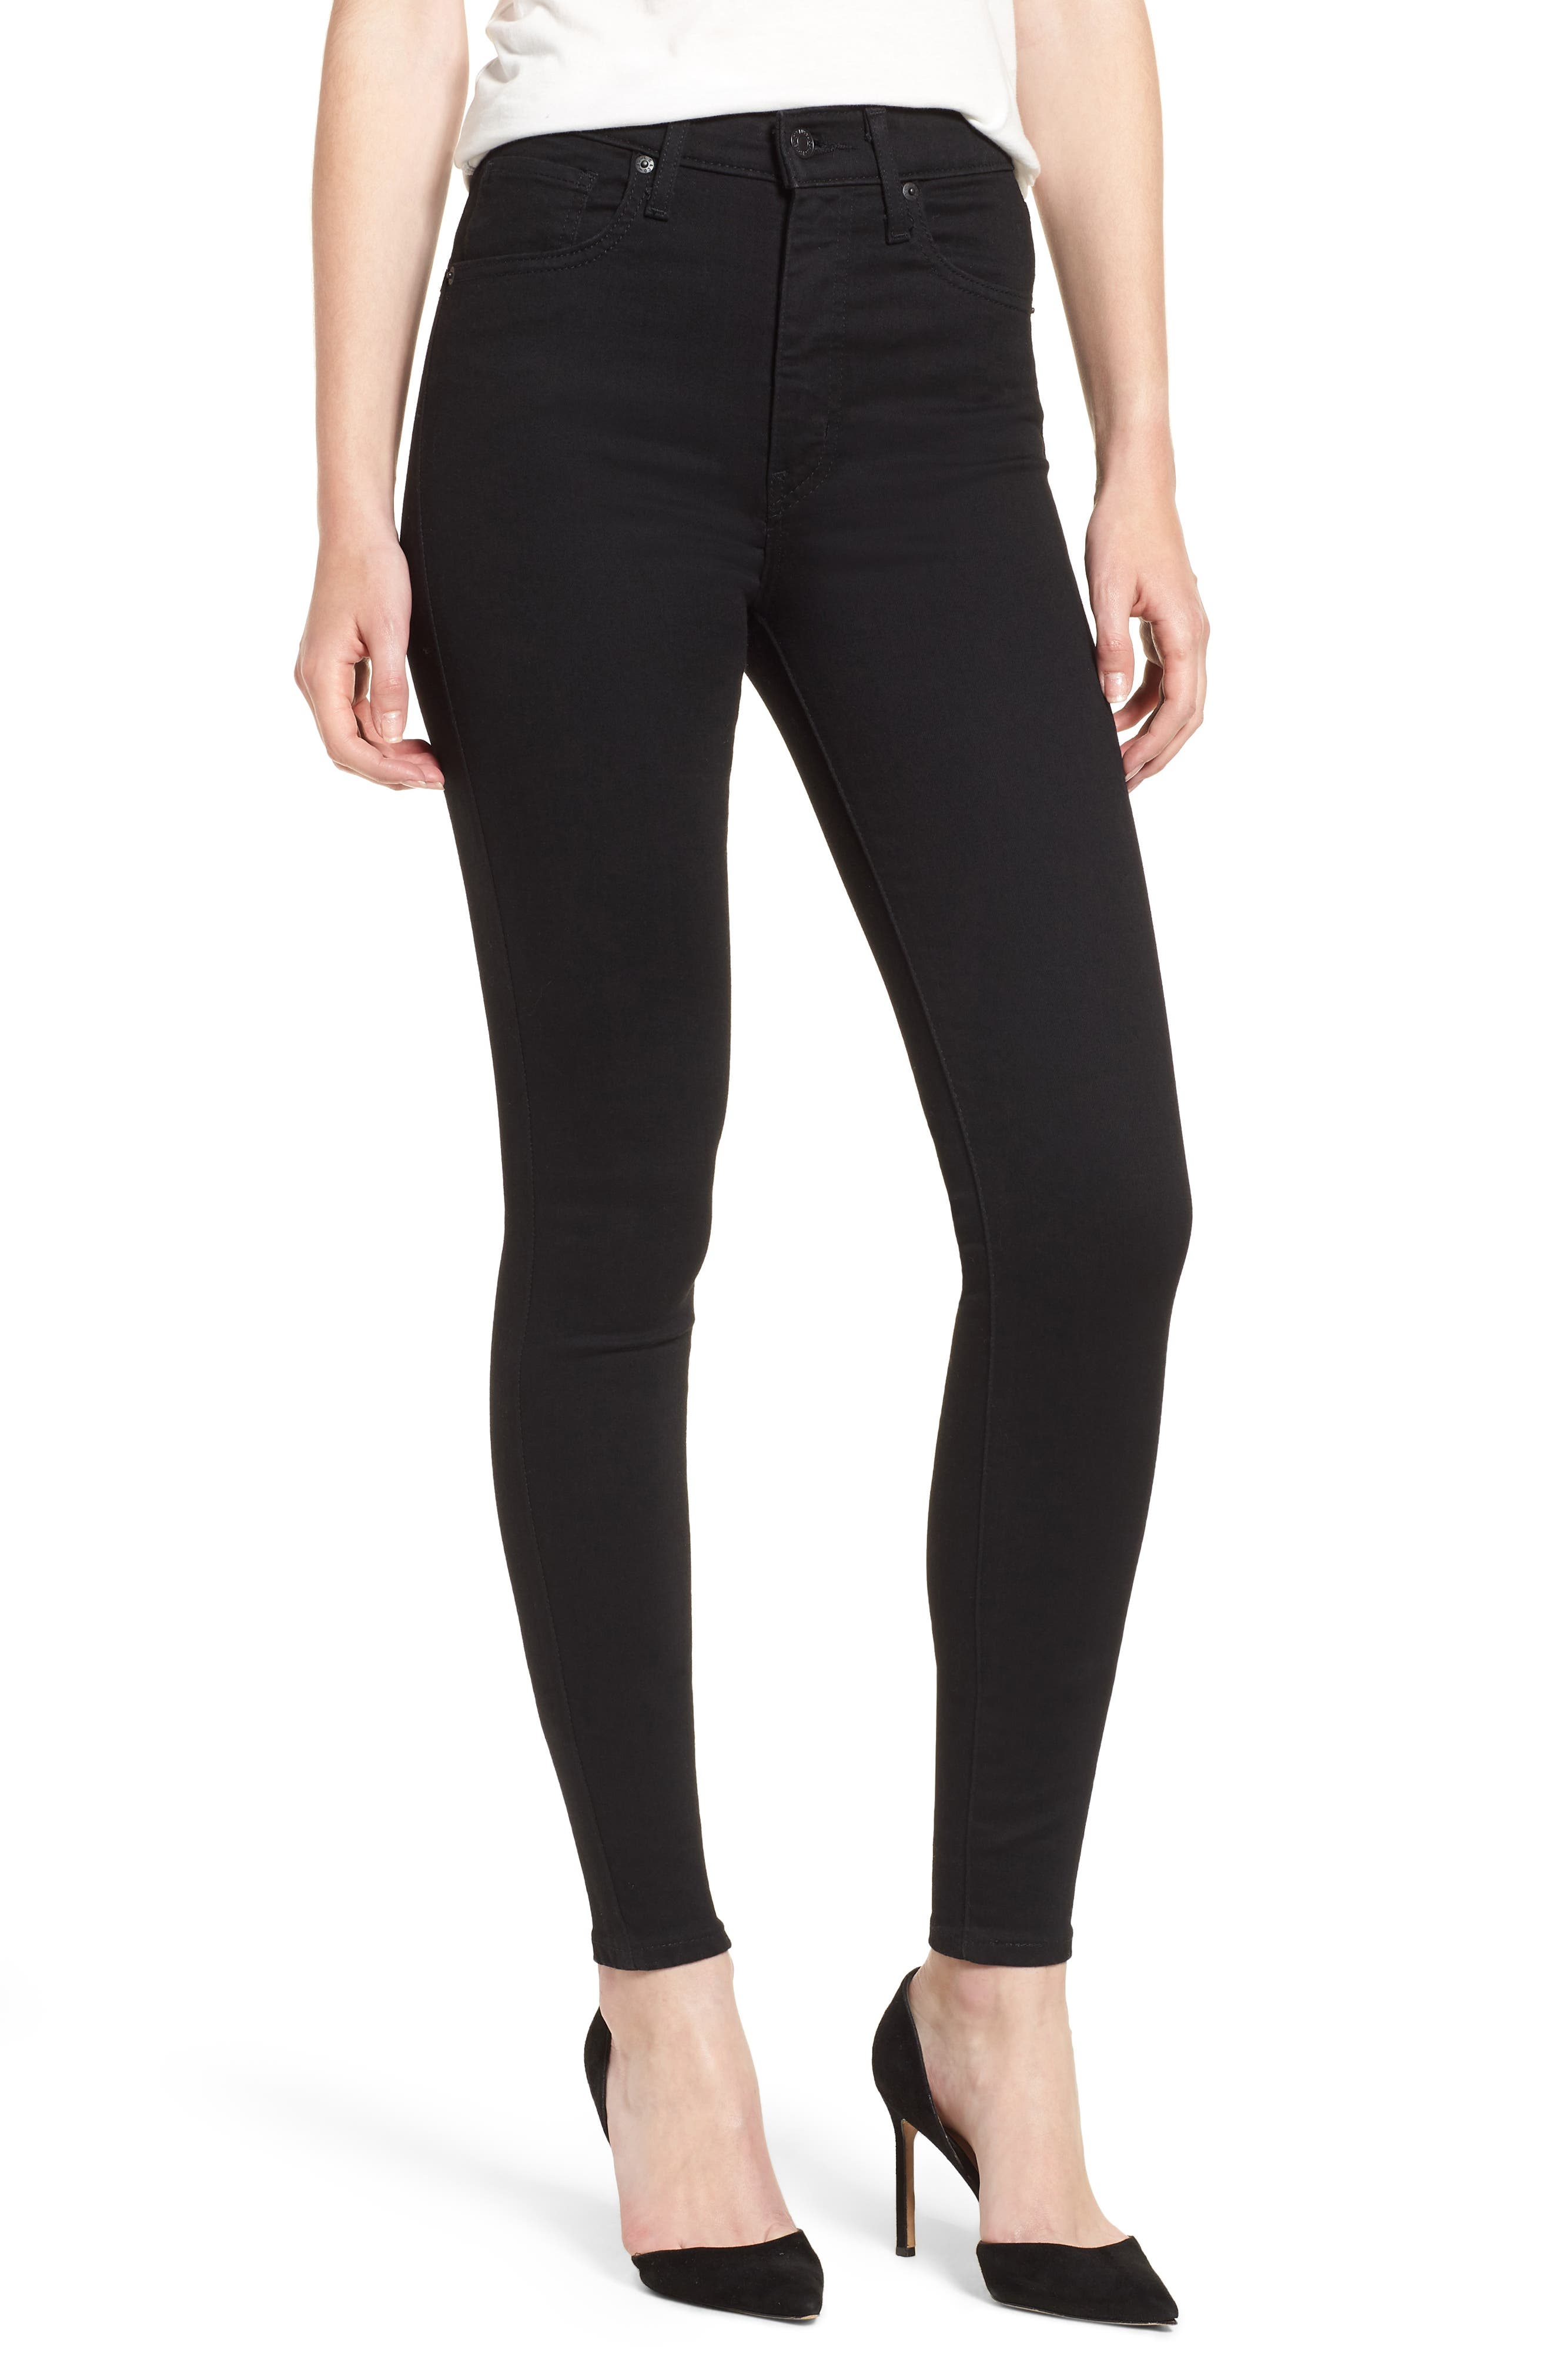 LEVI'S<SUP>®</SUP>, Mile High Super Skinny Jeans, Main thumbnail 1, color, BLACK GALAXY